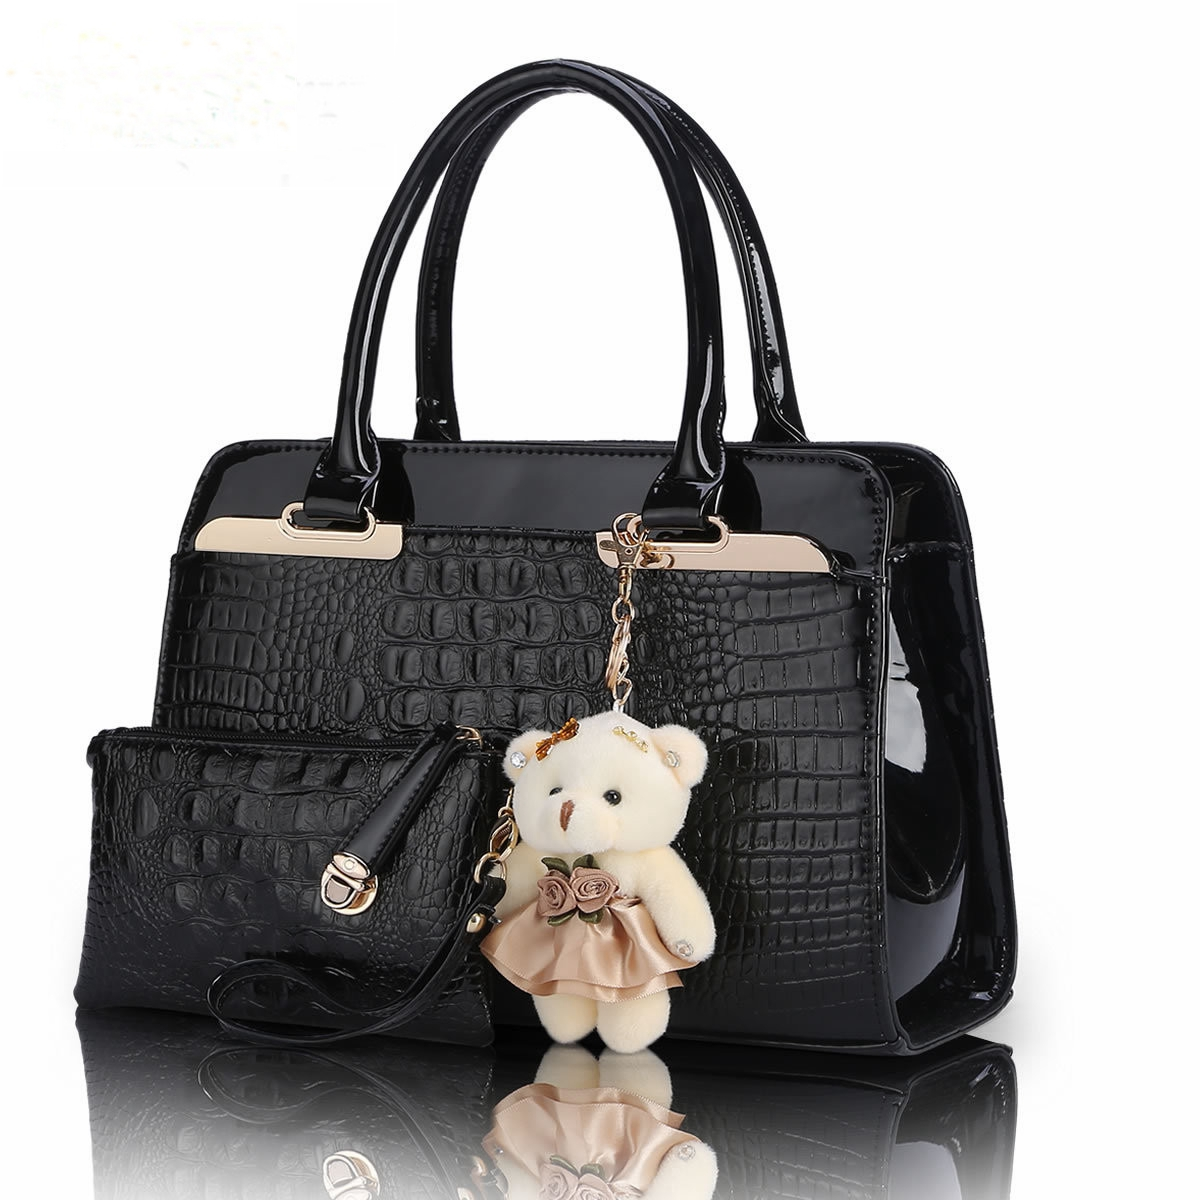 Women Bag Composite 2016 Spring Fashion Top PU Leather Handbag Shoulder Crossbody Black Luxury Ladies Famous Brand New Solid free shipping new fashion brand women s single shoulder bag ladies handbag top pu leather wholesale price 100